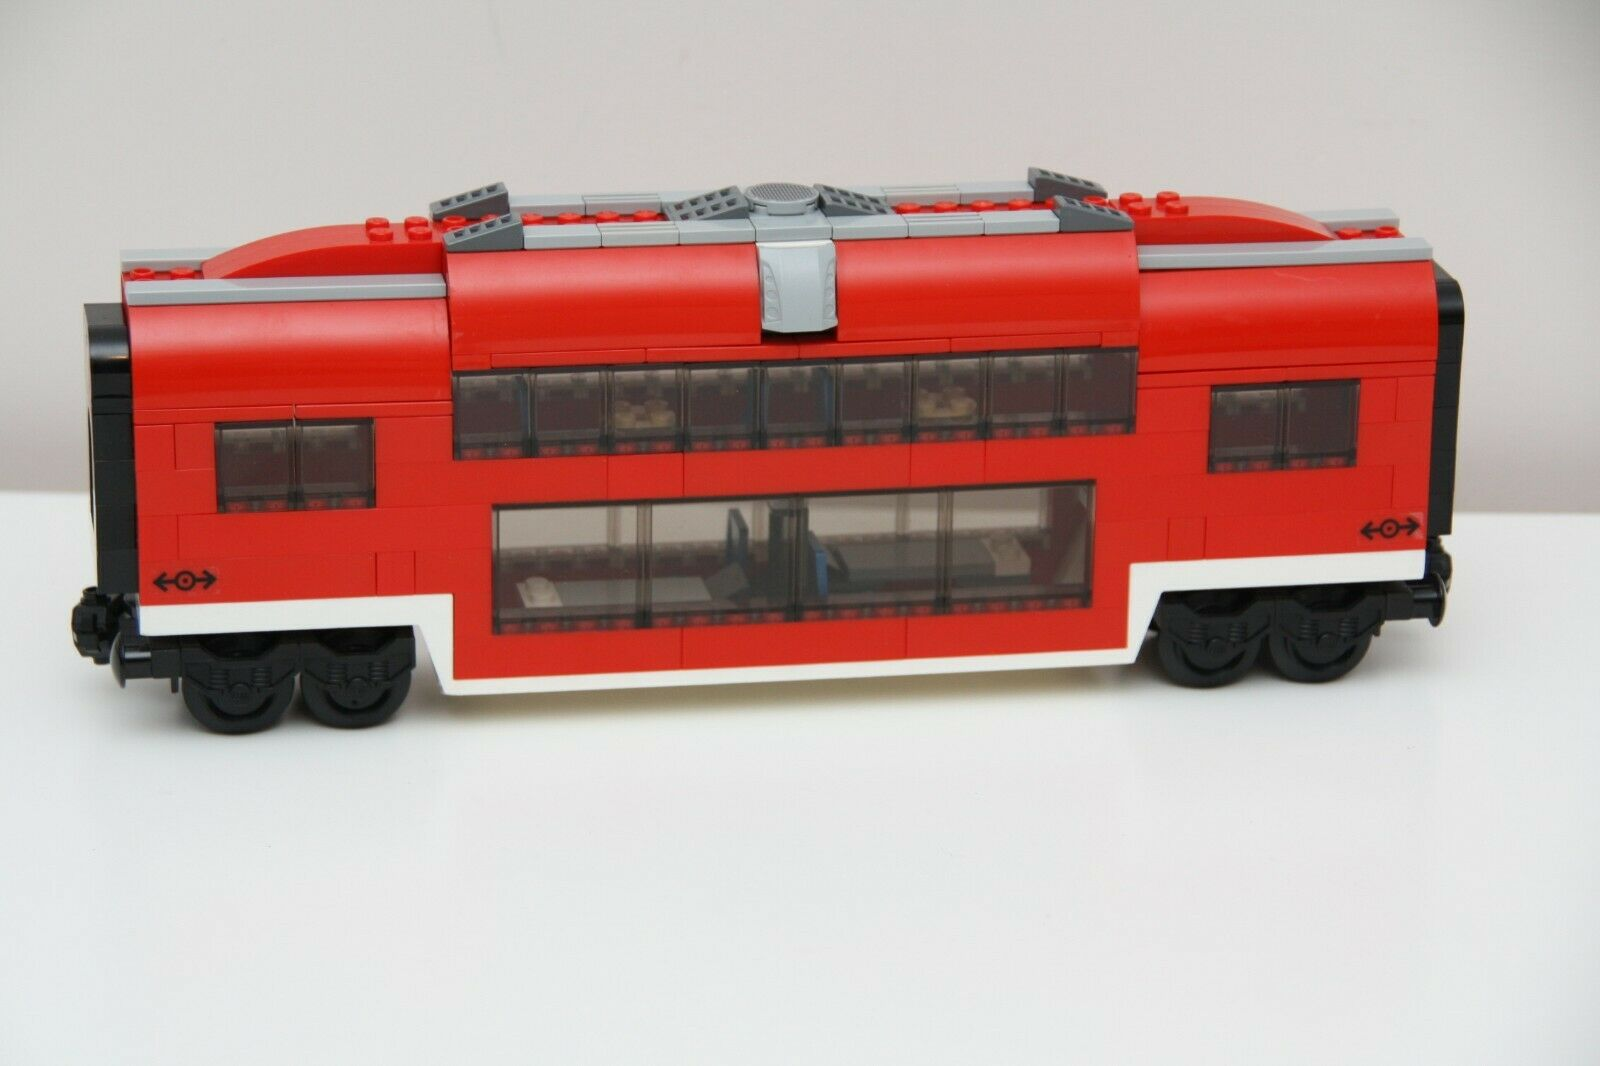 LEGO City Custom Built rot Passenger Train Middle Middle Middle Observation Car Carriage 7938 755643